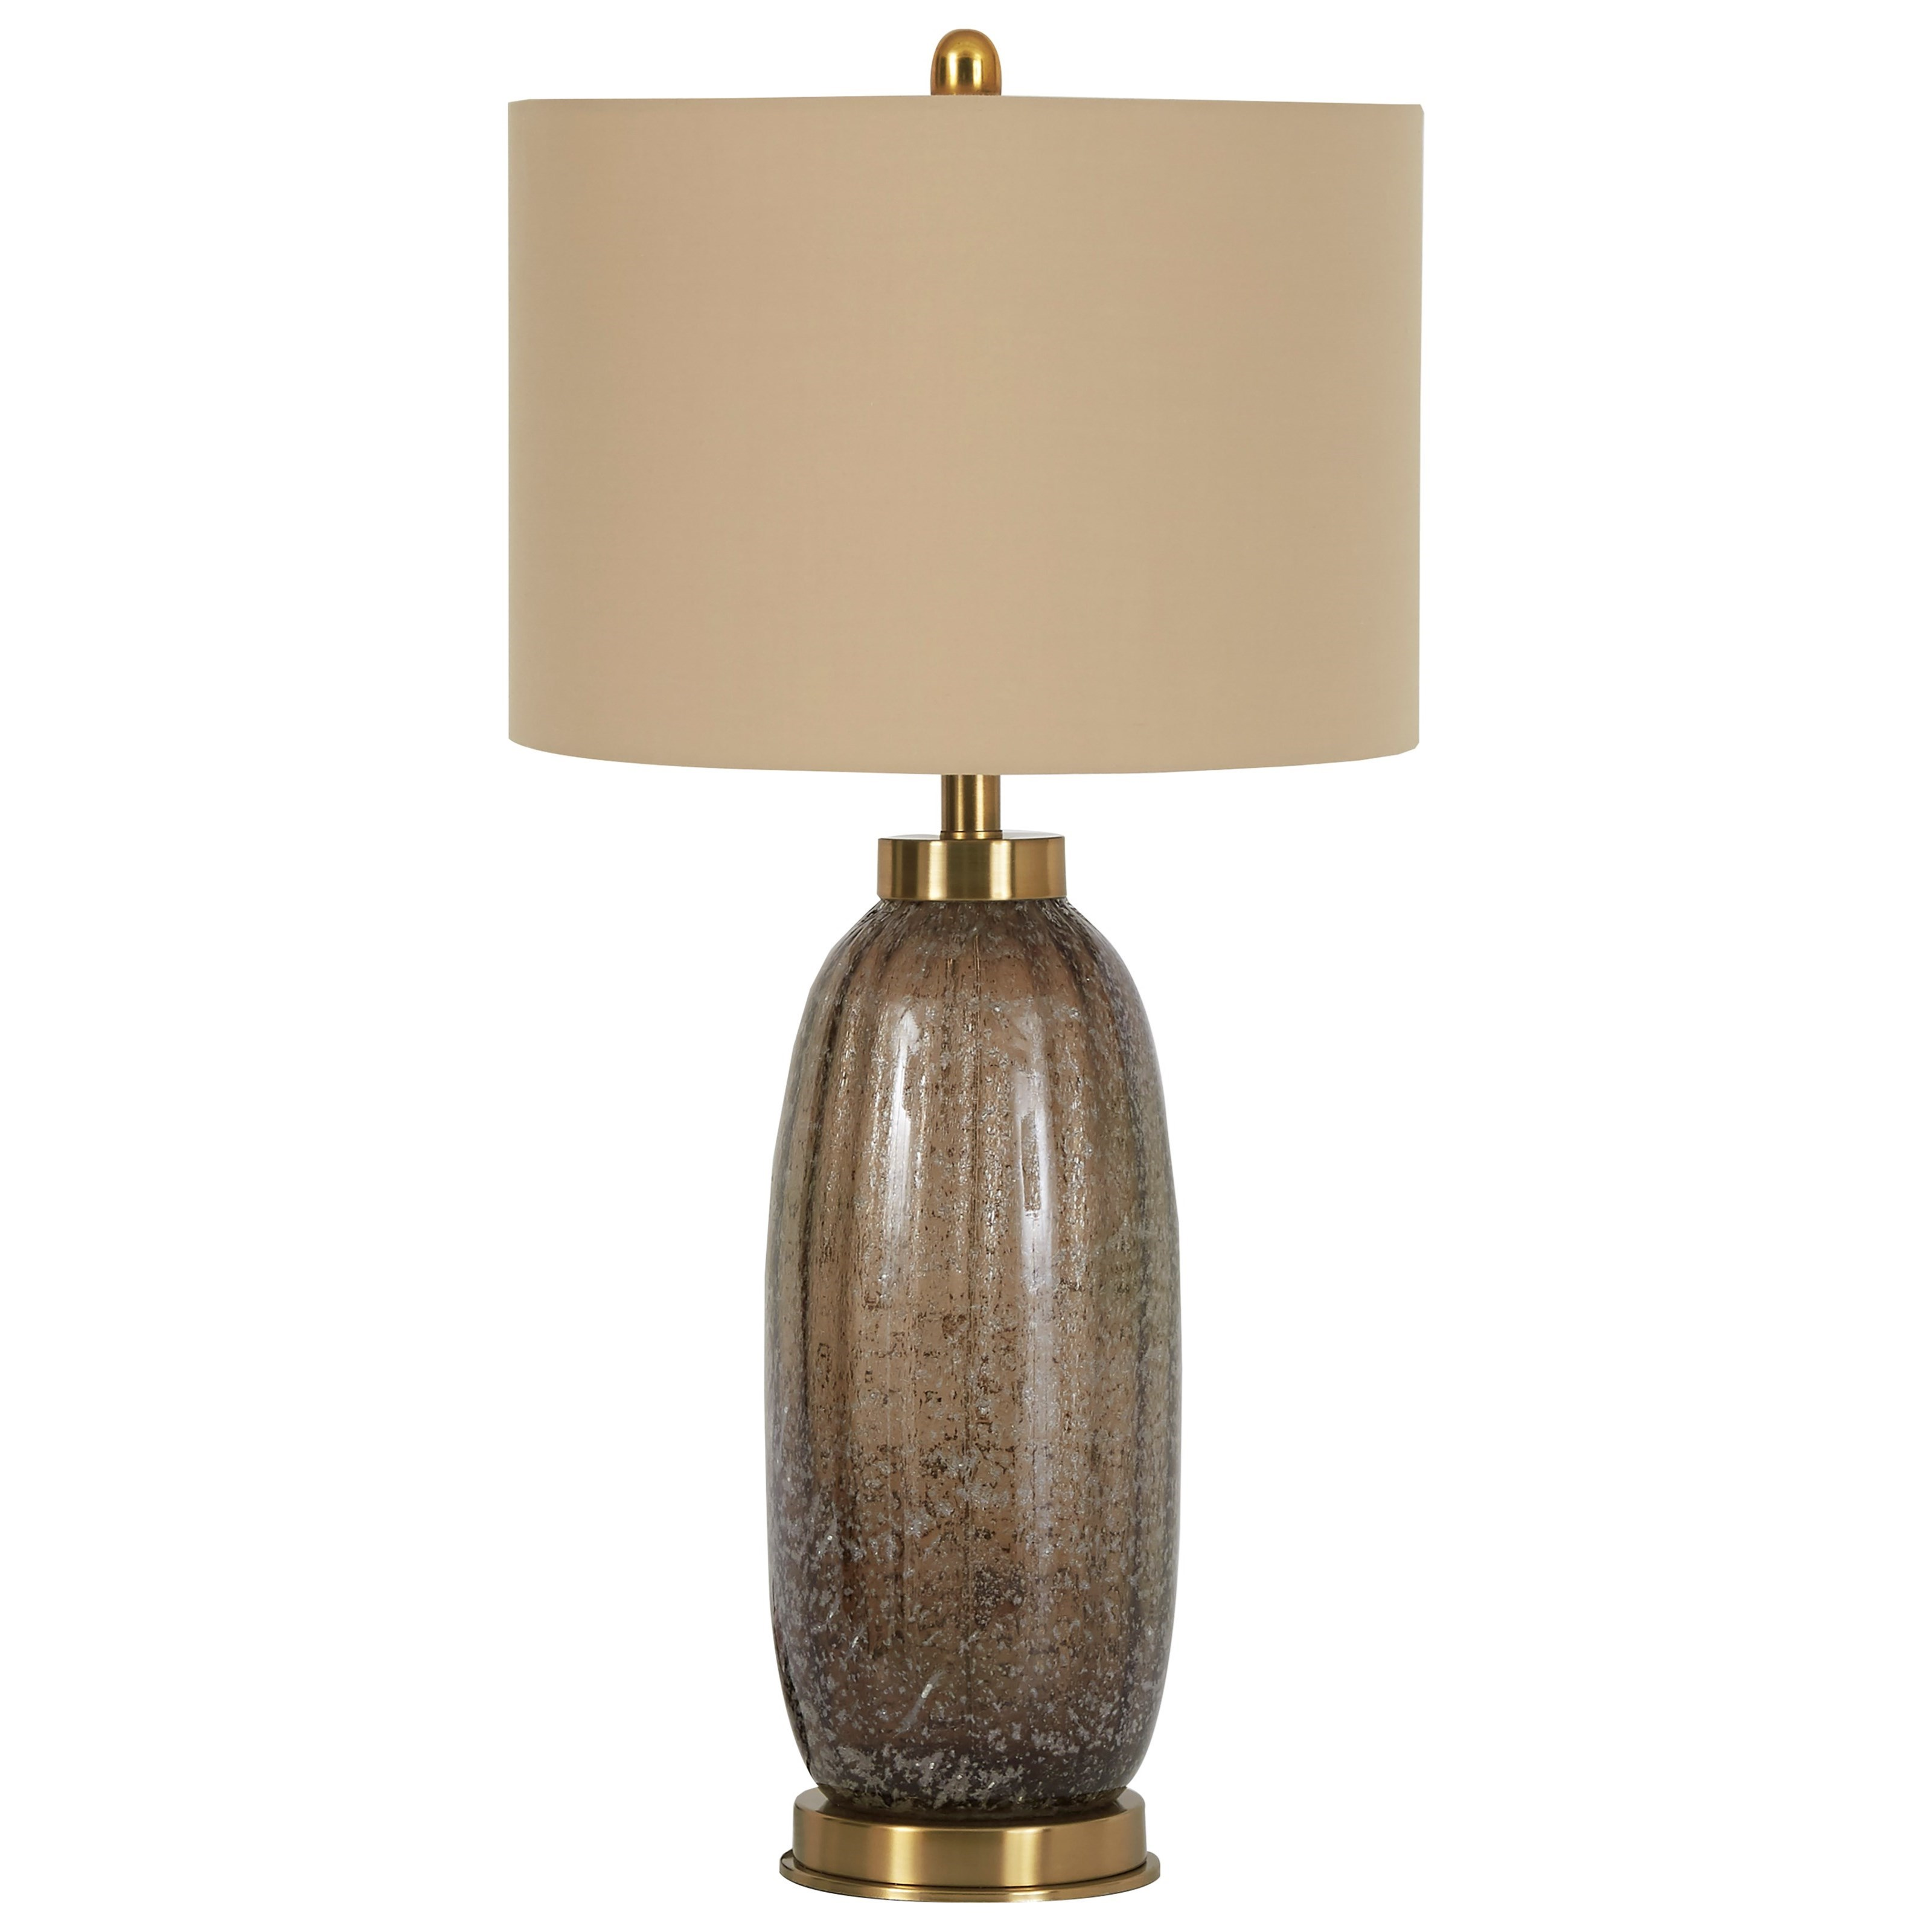 Lamps - Contemporary Set of 2 Aaronby Taupe Glass Table Lamps by Ashley (Signature Design) at Johnny Janosik